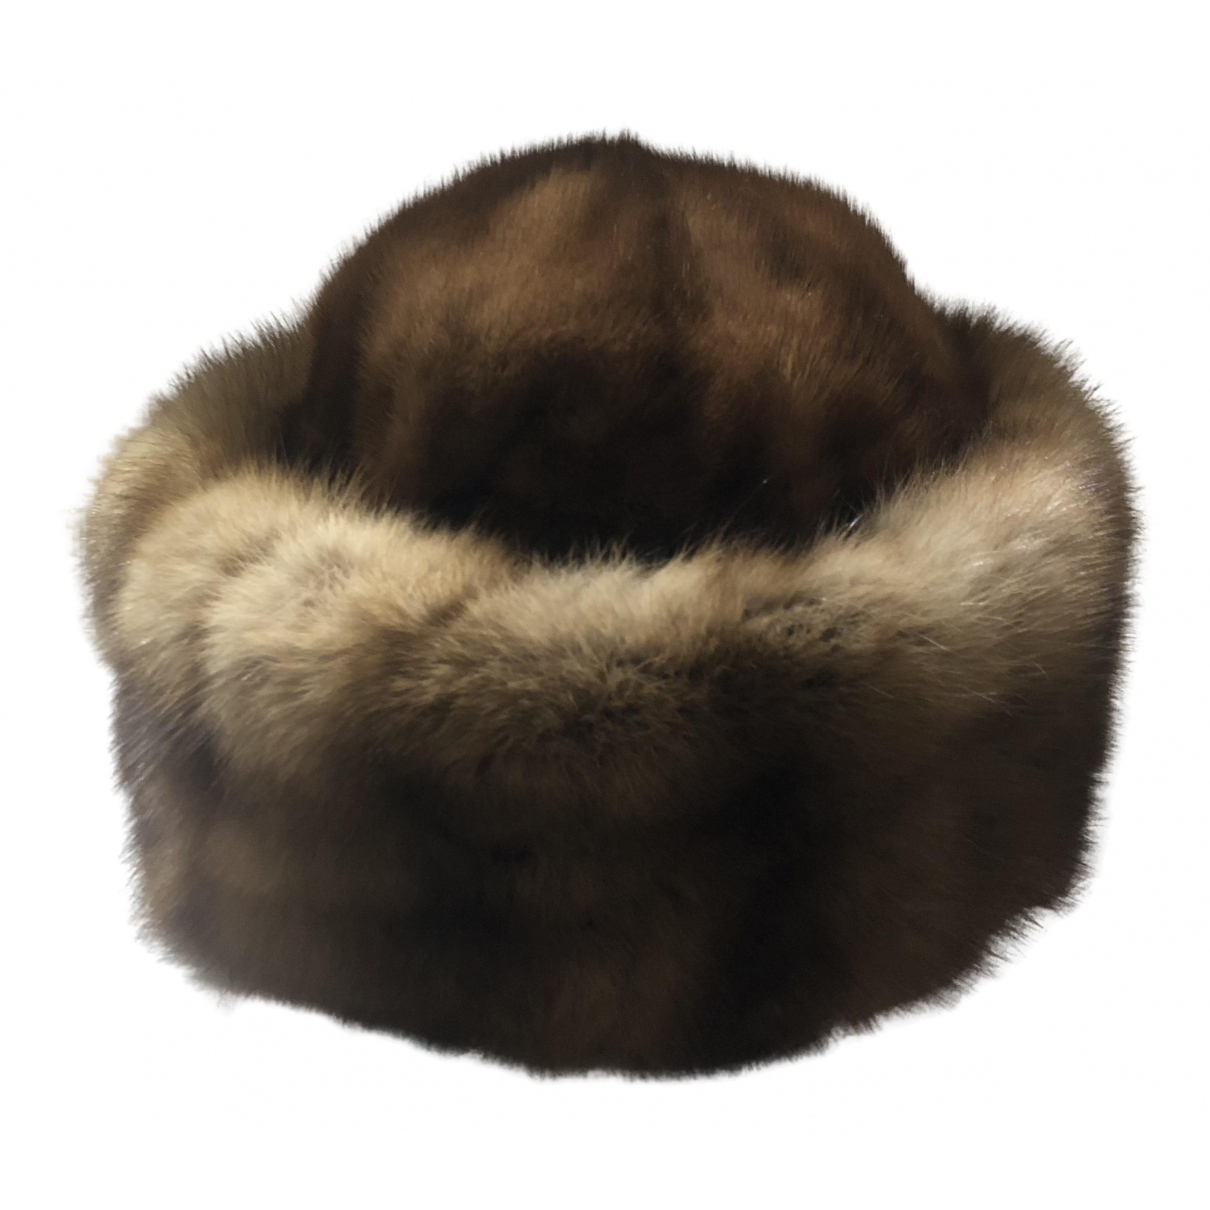 Non Signé / Unsigned N Camel Mink hat for Women 59 cm